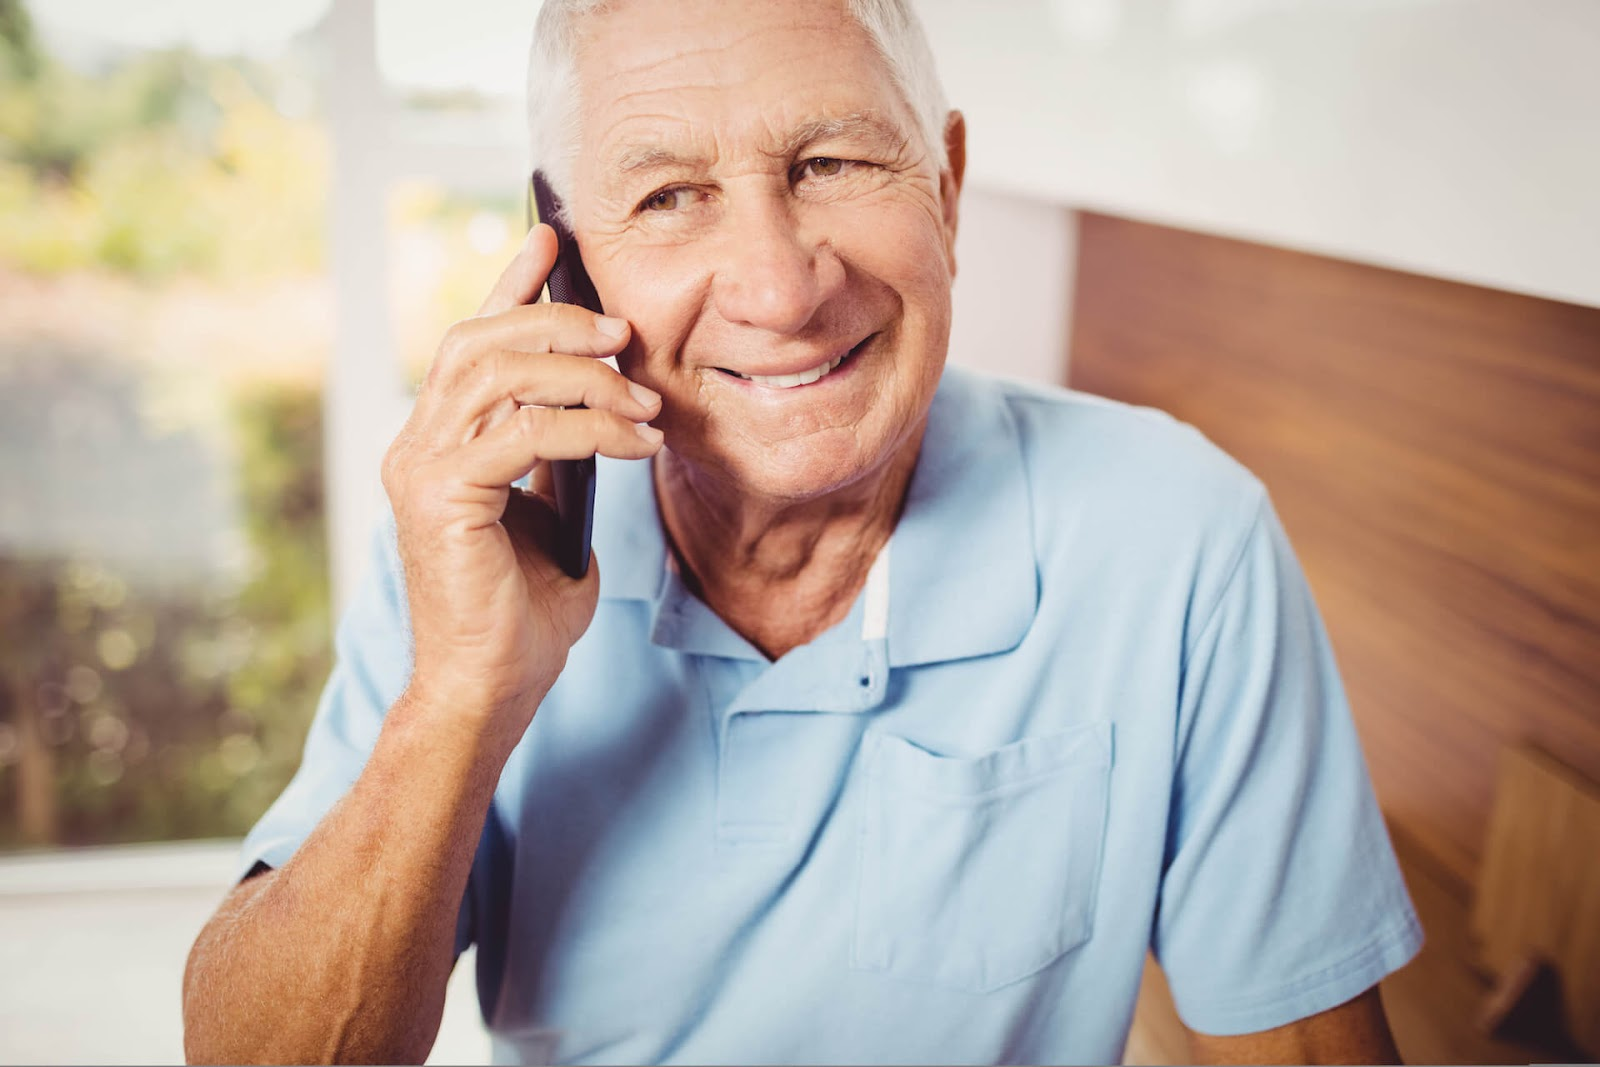 Senior man talking on a cell phone